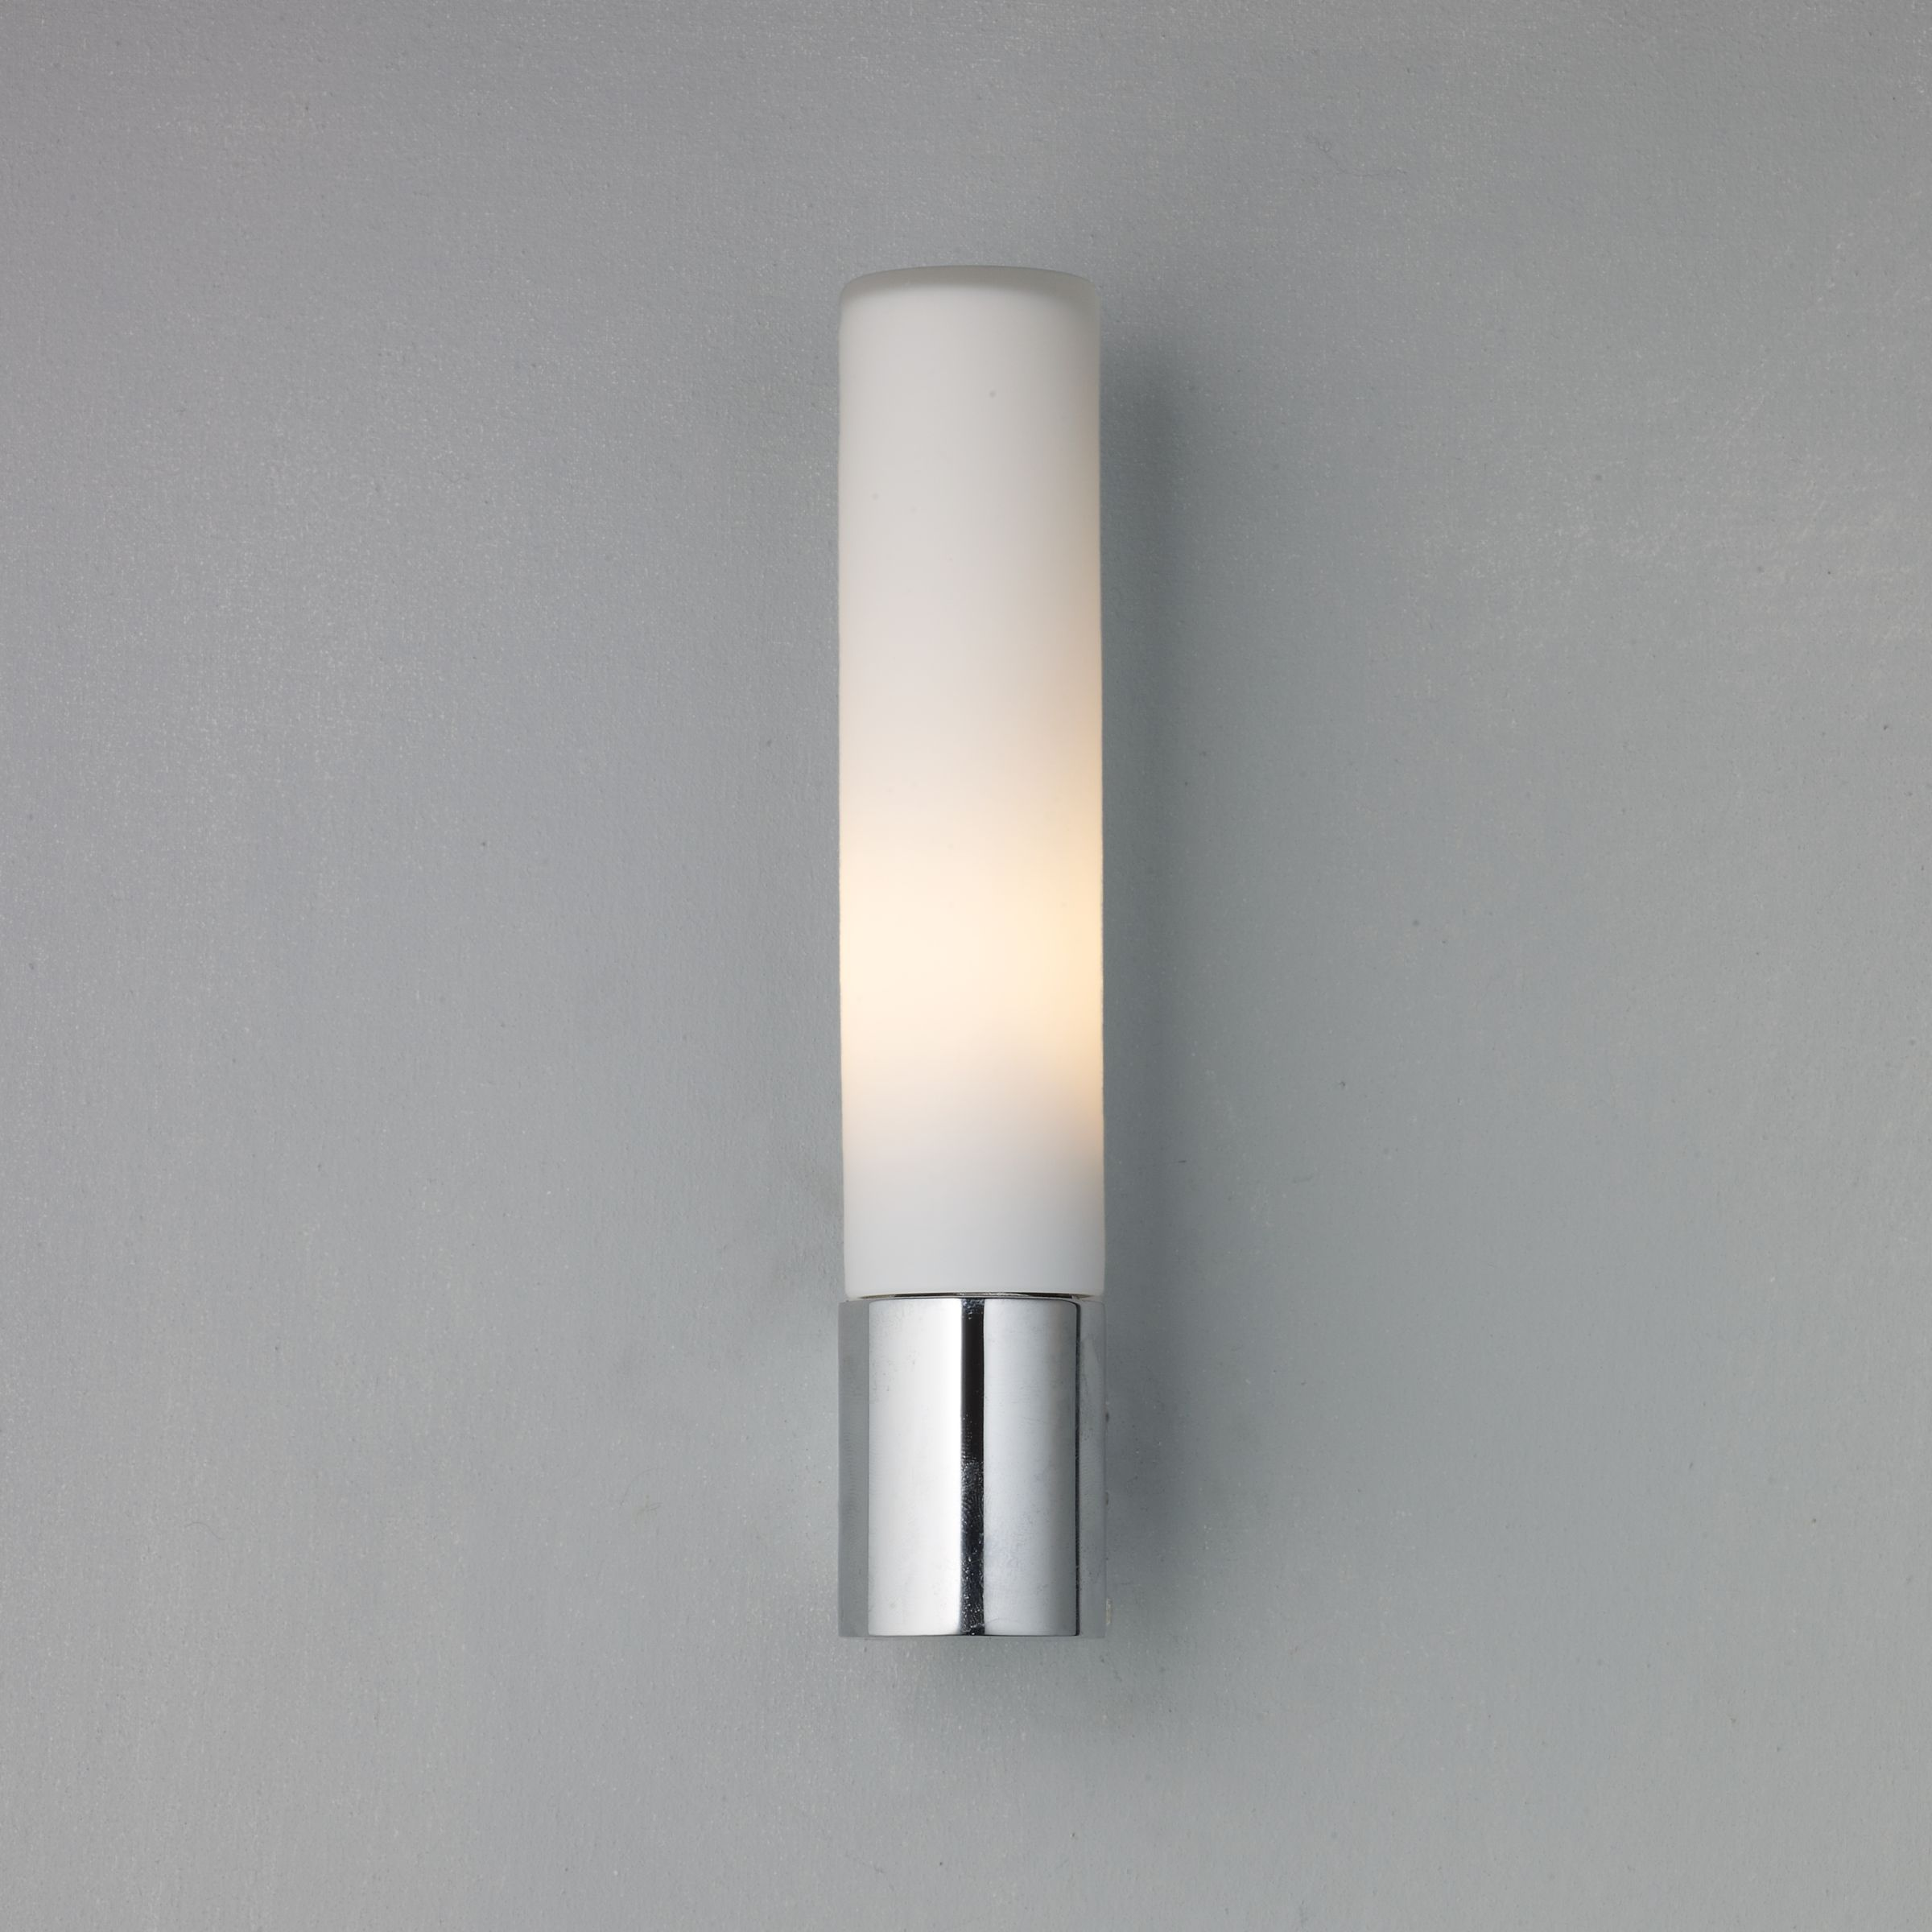 Buy ASTRO Bari Bathroom Wall Light John Lewis